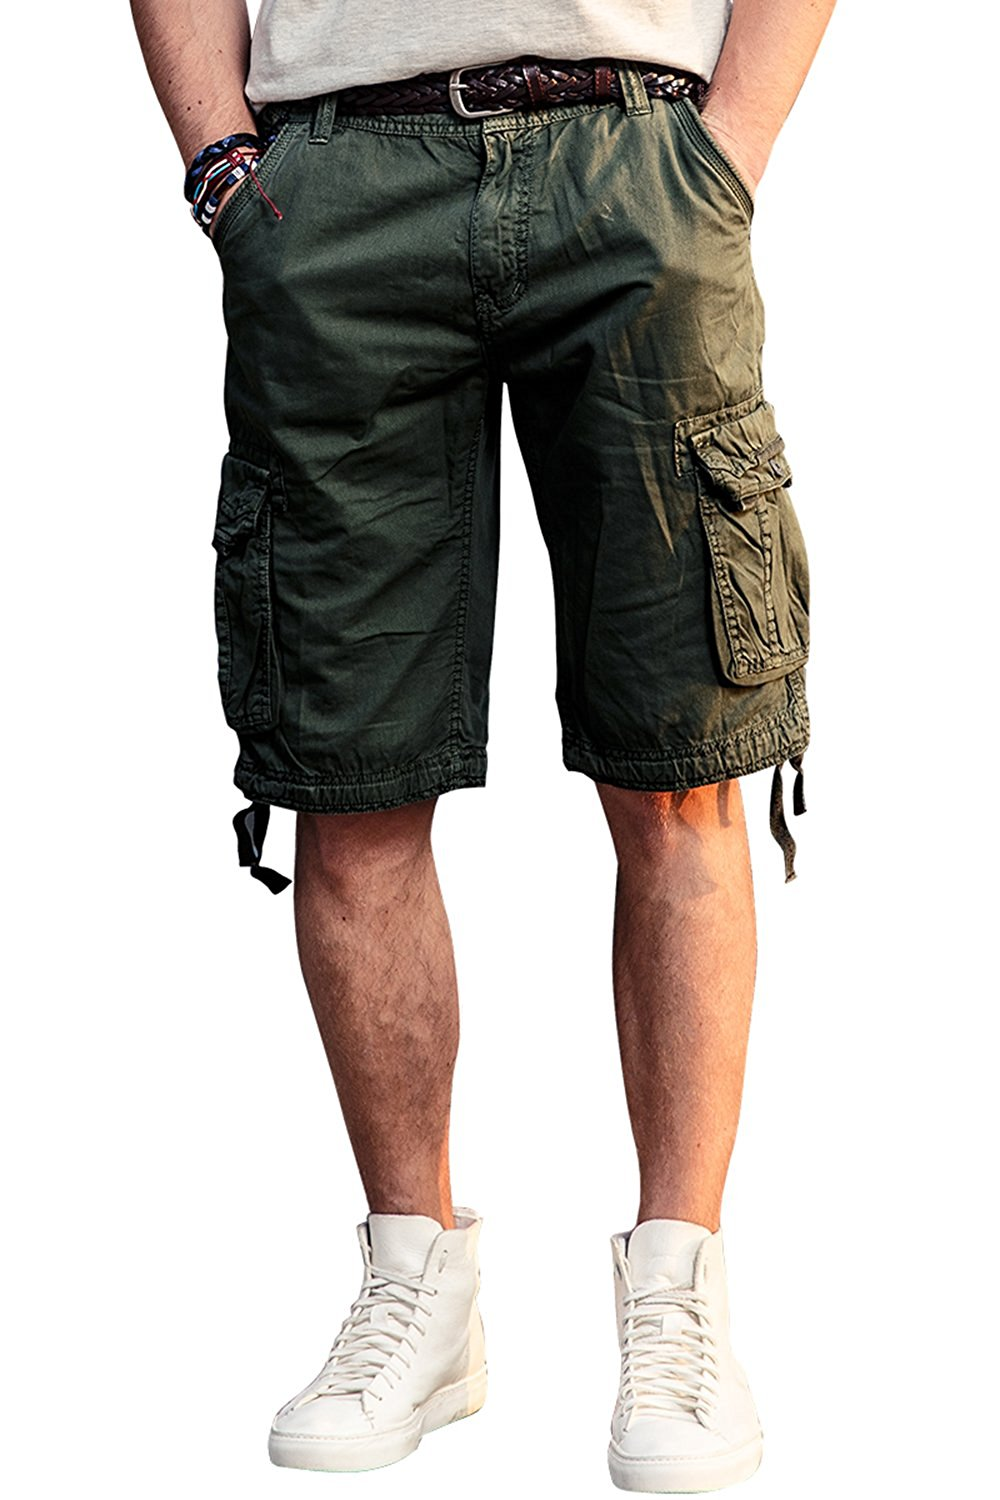 bfcde48bcb Get Quotations · INFLATION Mens Flat Front Shorts Casual Relaxed Fit Cargo  Shorts 100% Cotton Shorts with Pockets